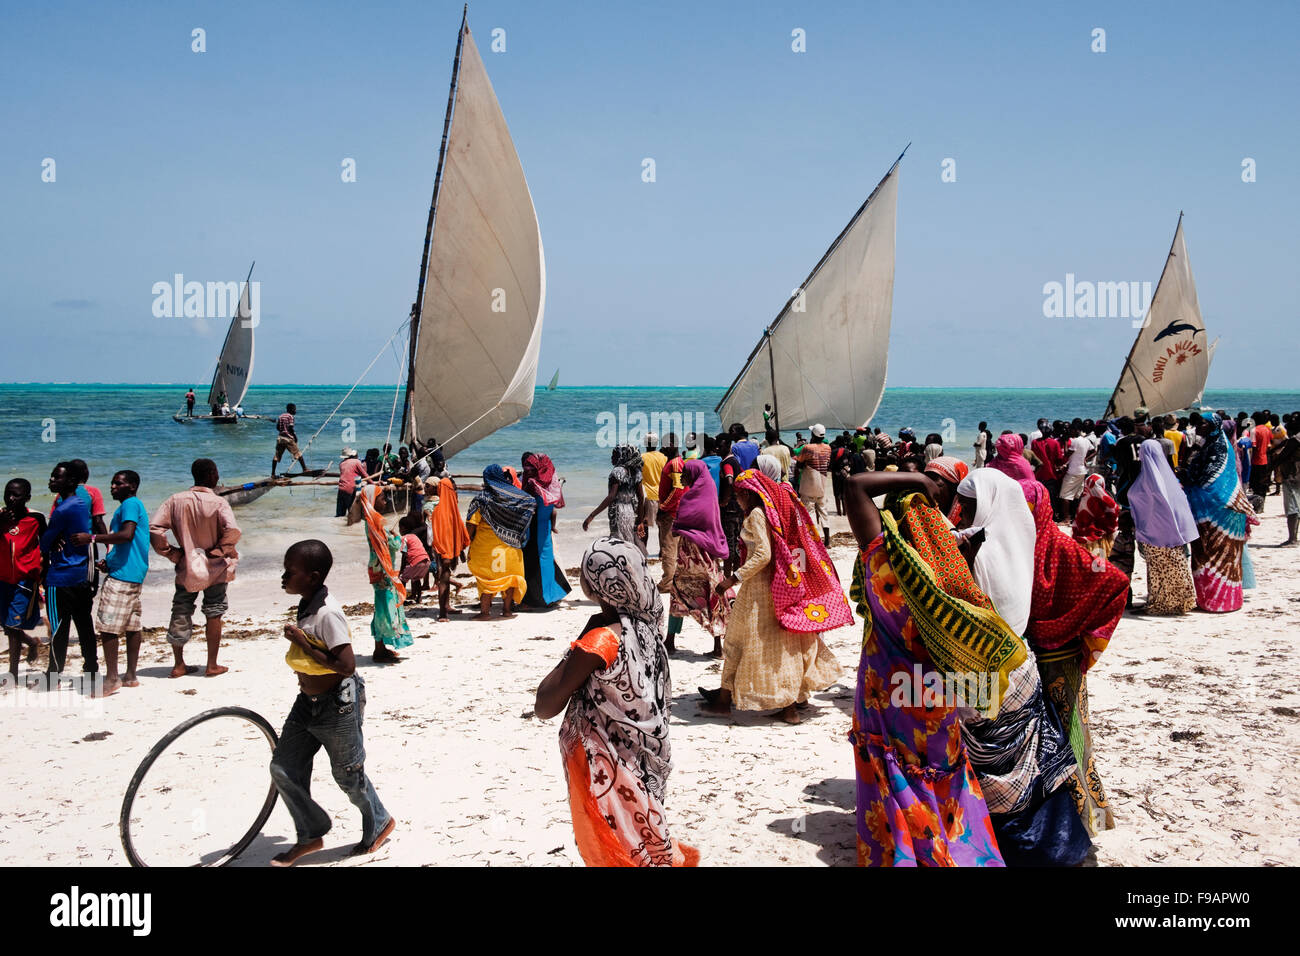 Villagers in colorful clothes from the village of Jambiani in Zanzibar gather to watch the annual Dhow race - Stock Image